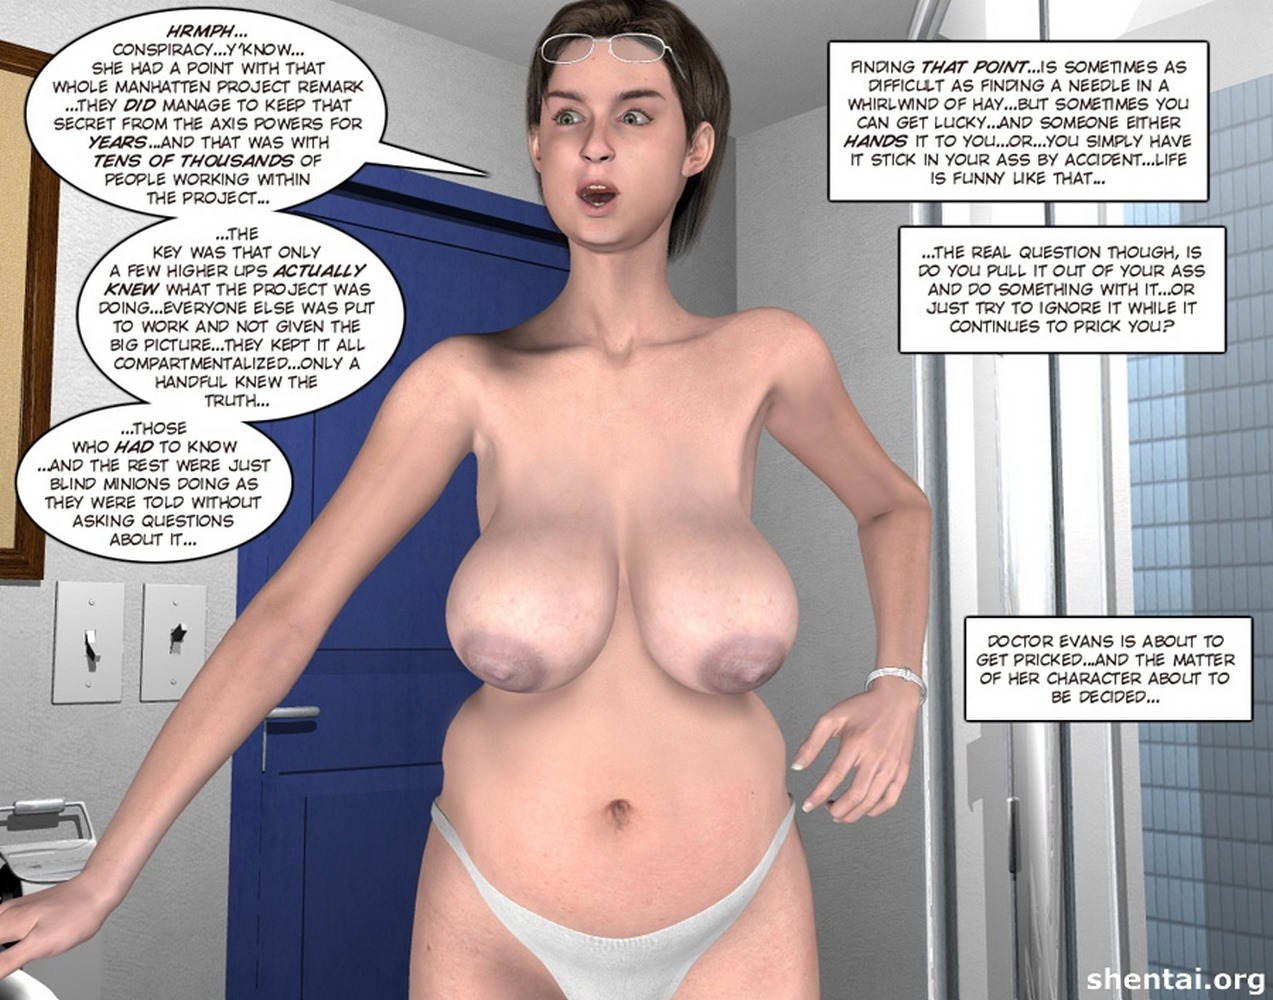 Jag 27-Malevolent Intentions 1 - Free Adult Porn Comix